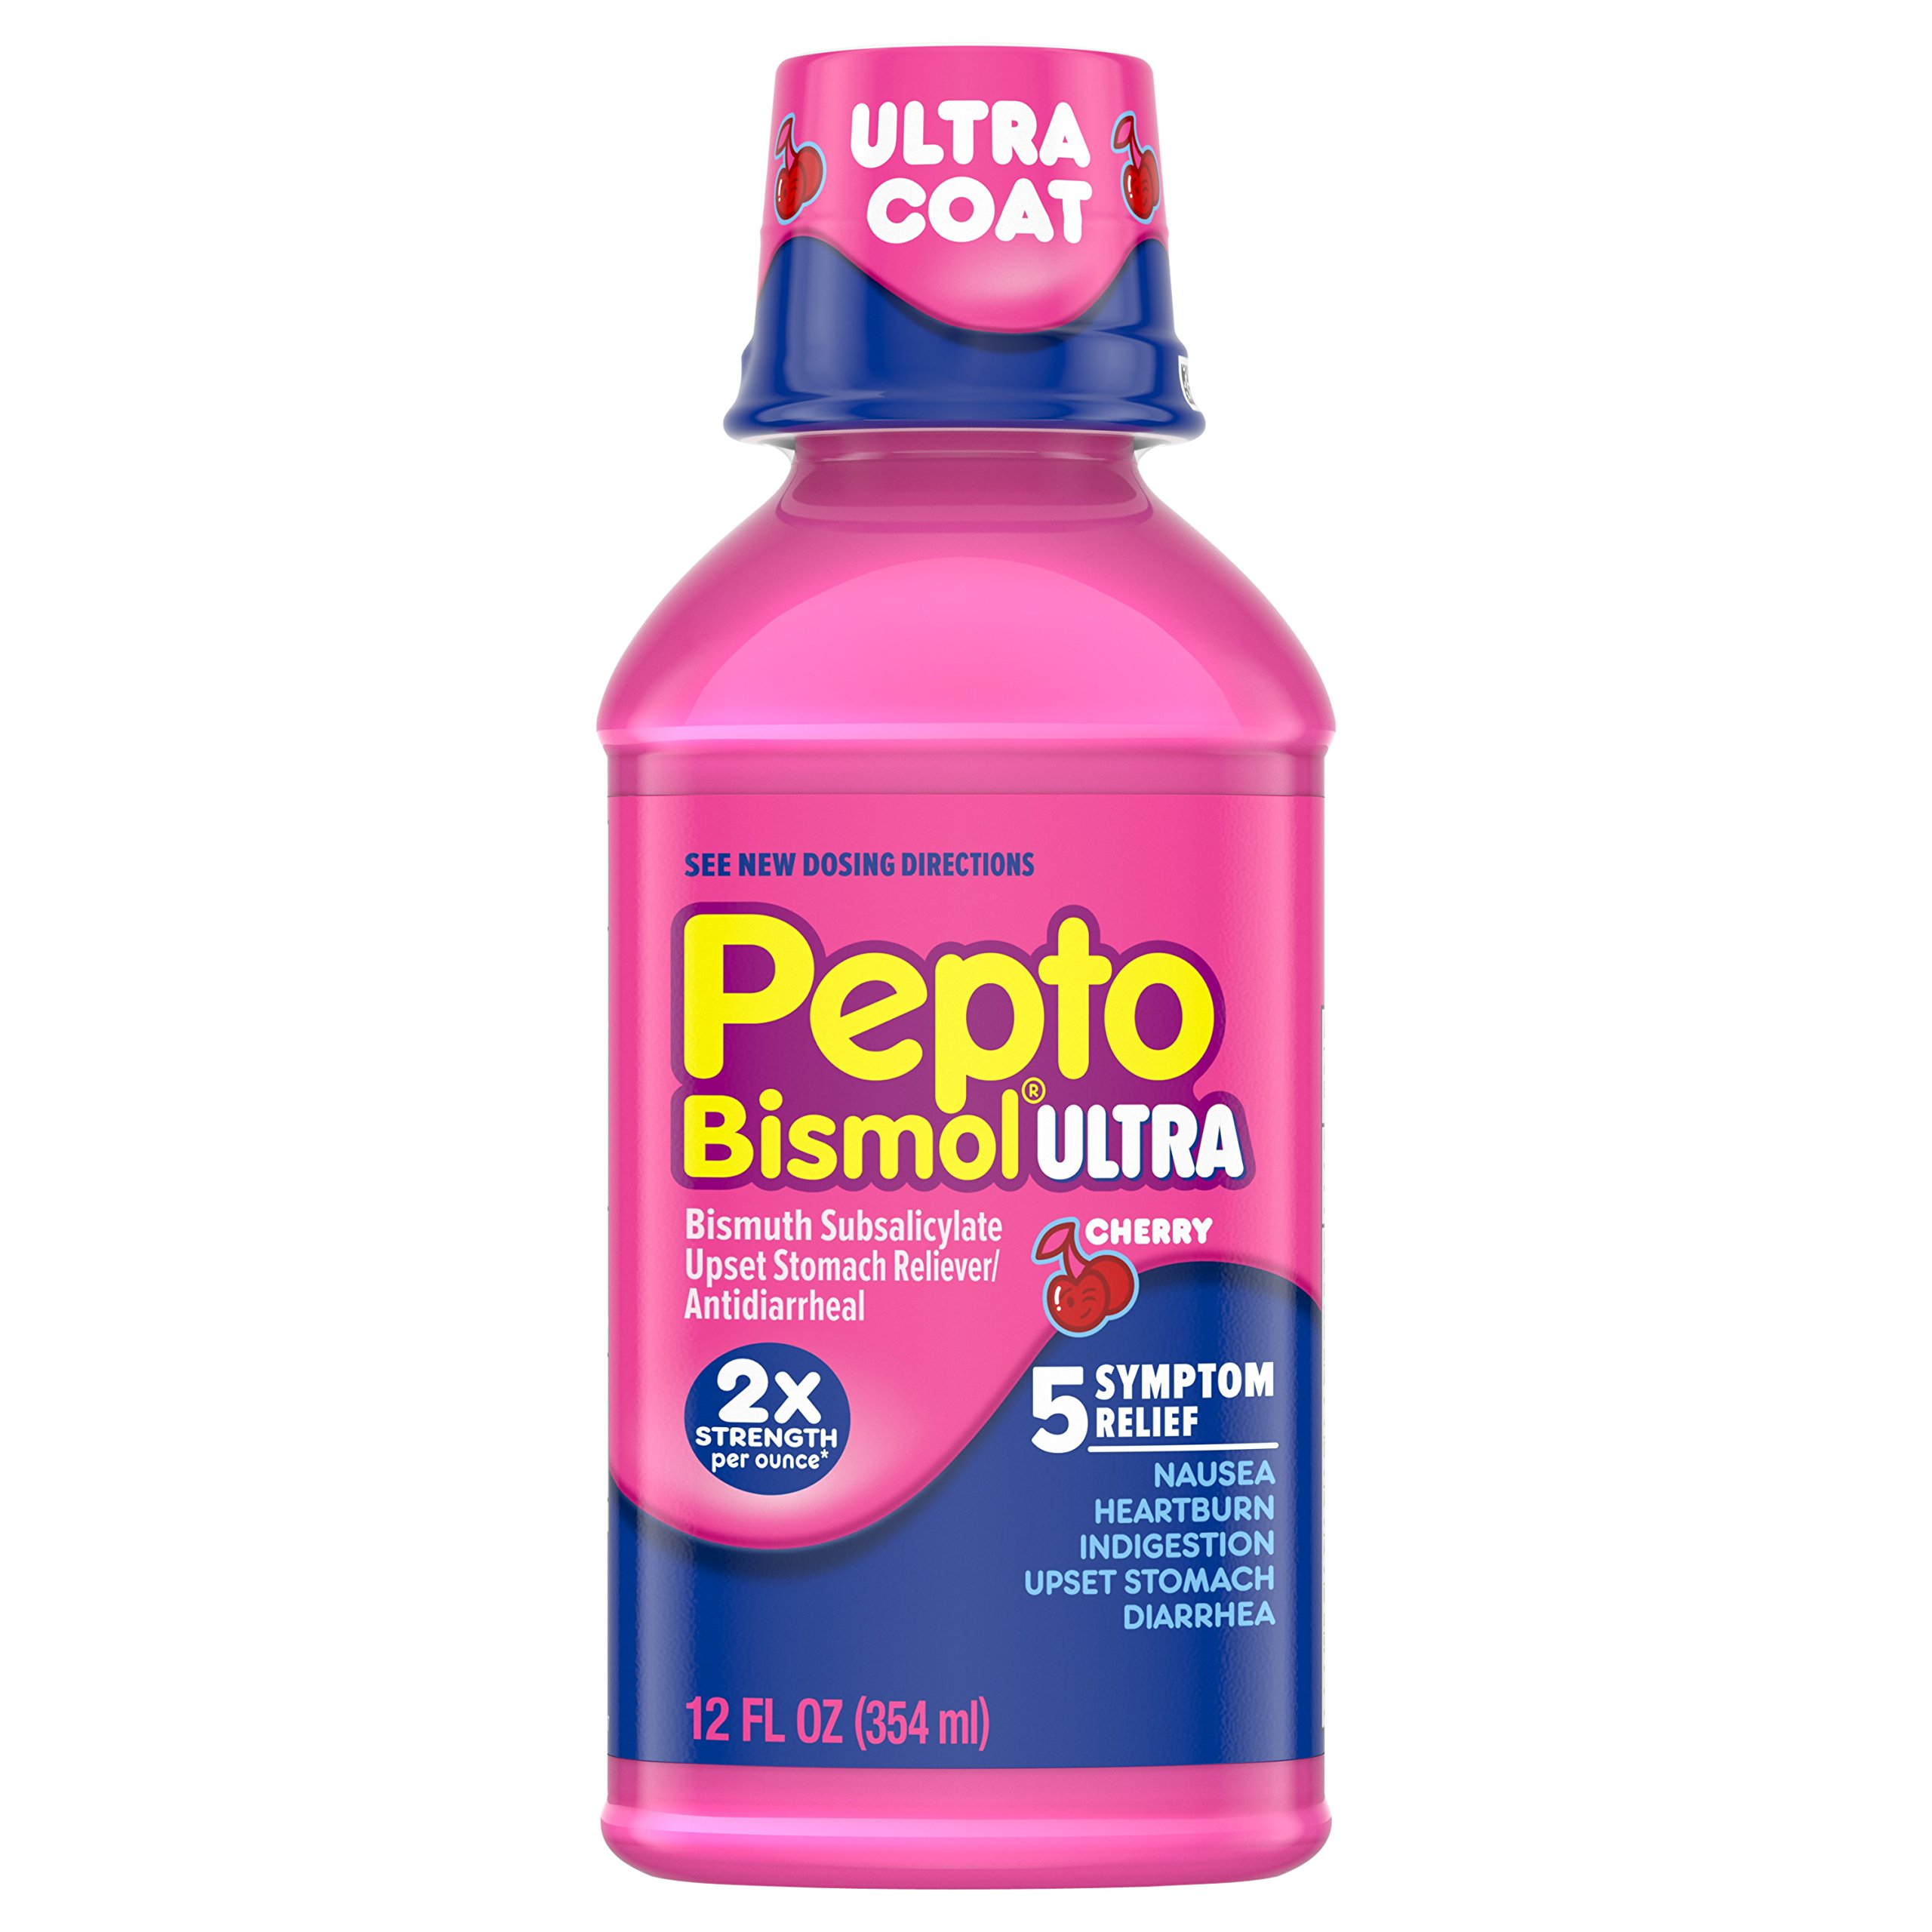 Pepto Bismol Ultra, Upset Stomach, Indigestion, Nausea, Heartburn and Diarrhea Relief Medicine, Cherry, 12 Fl Oz (Pack of 3) (Packaging May Vary)